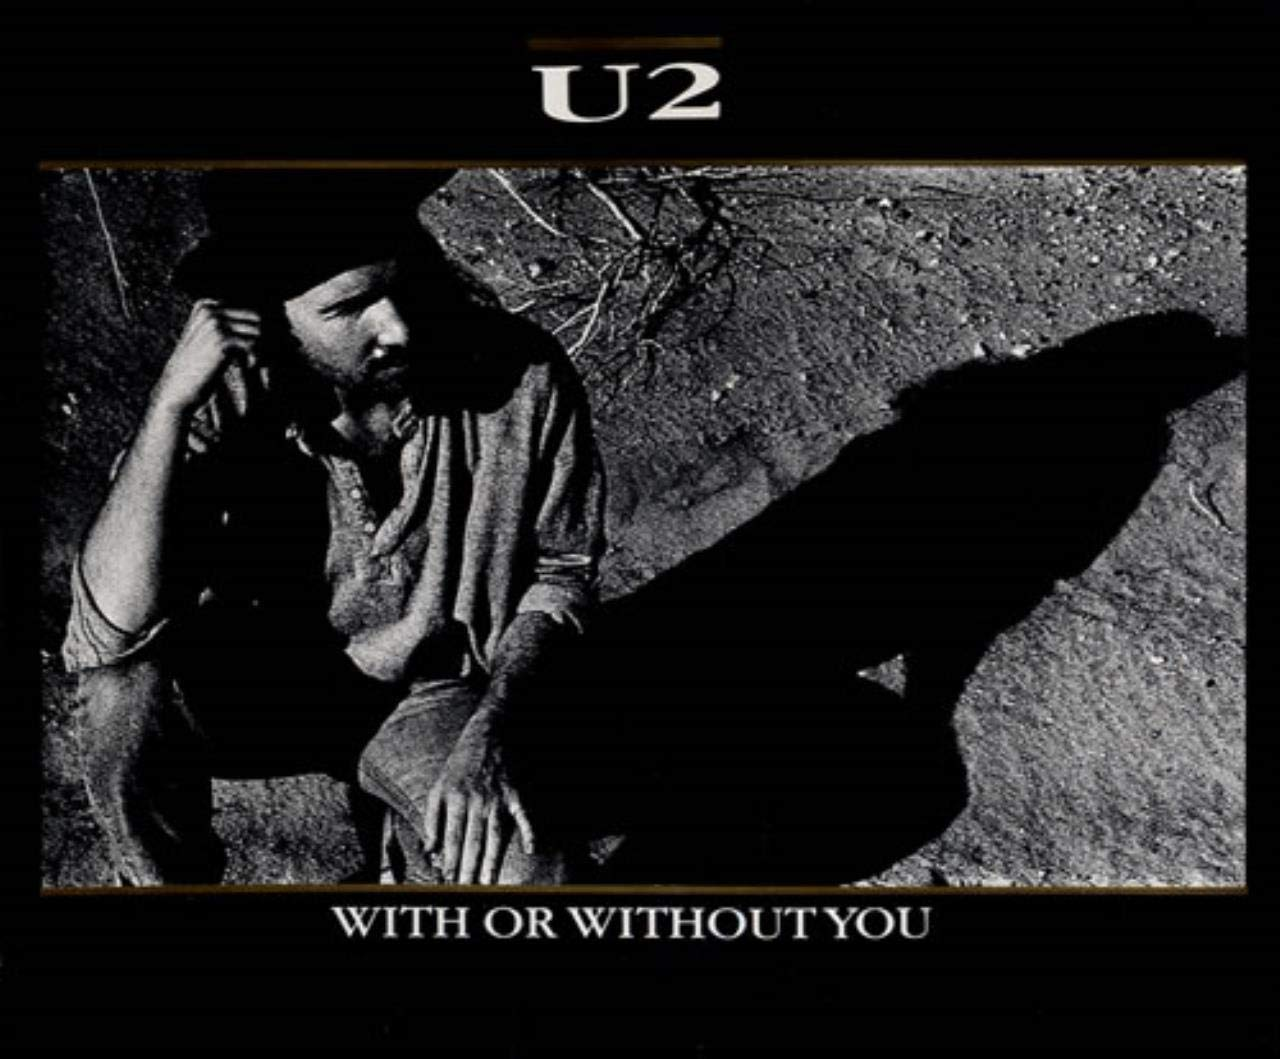 With or without you : U2: Amazon.es: Música